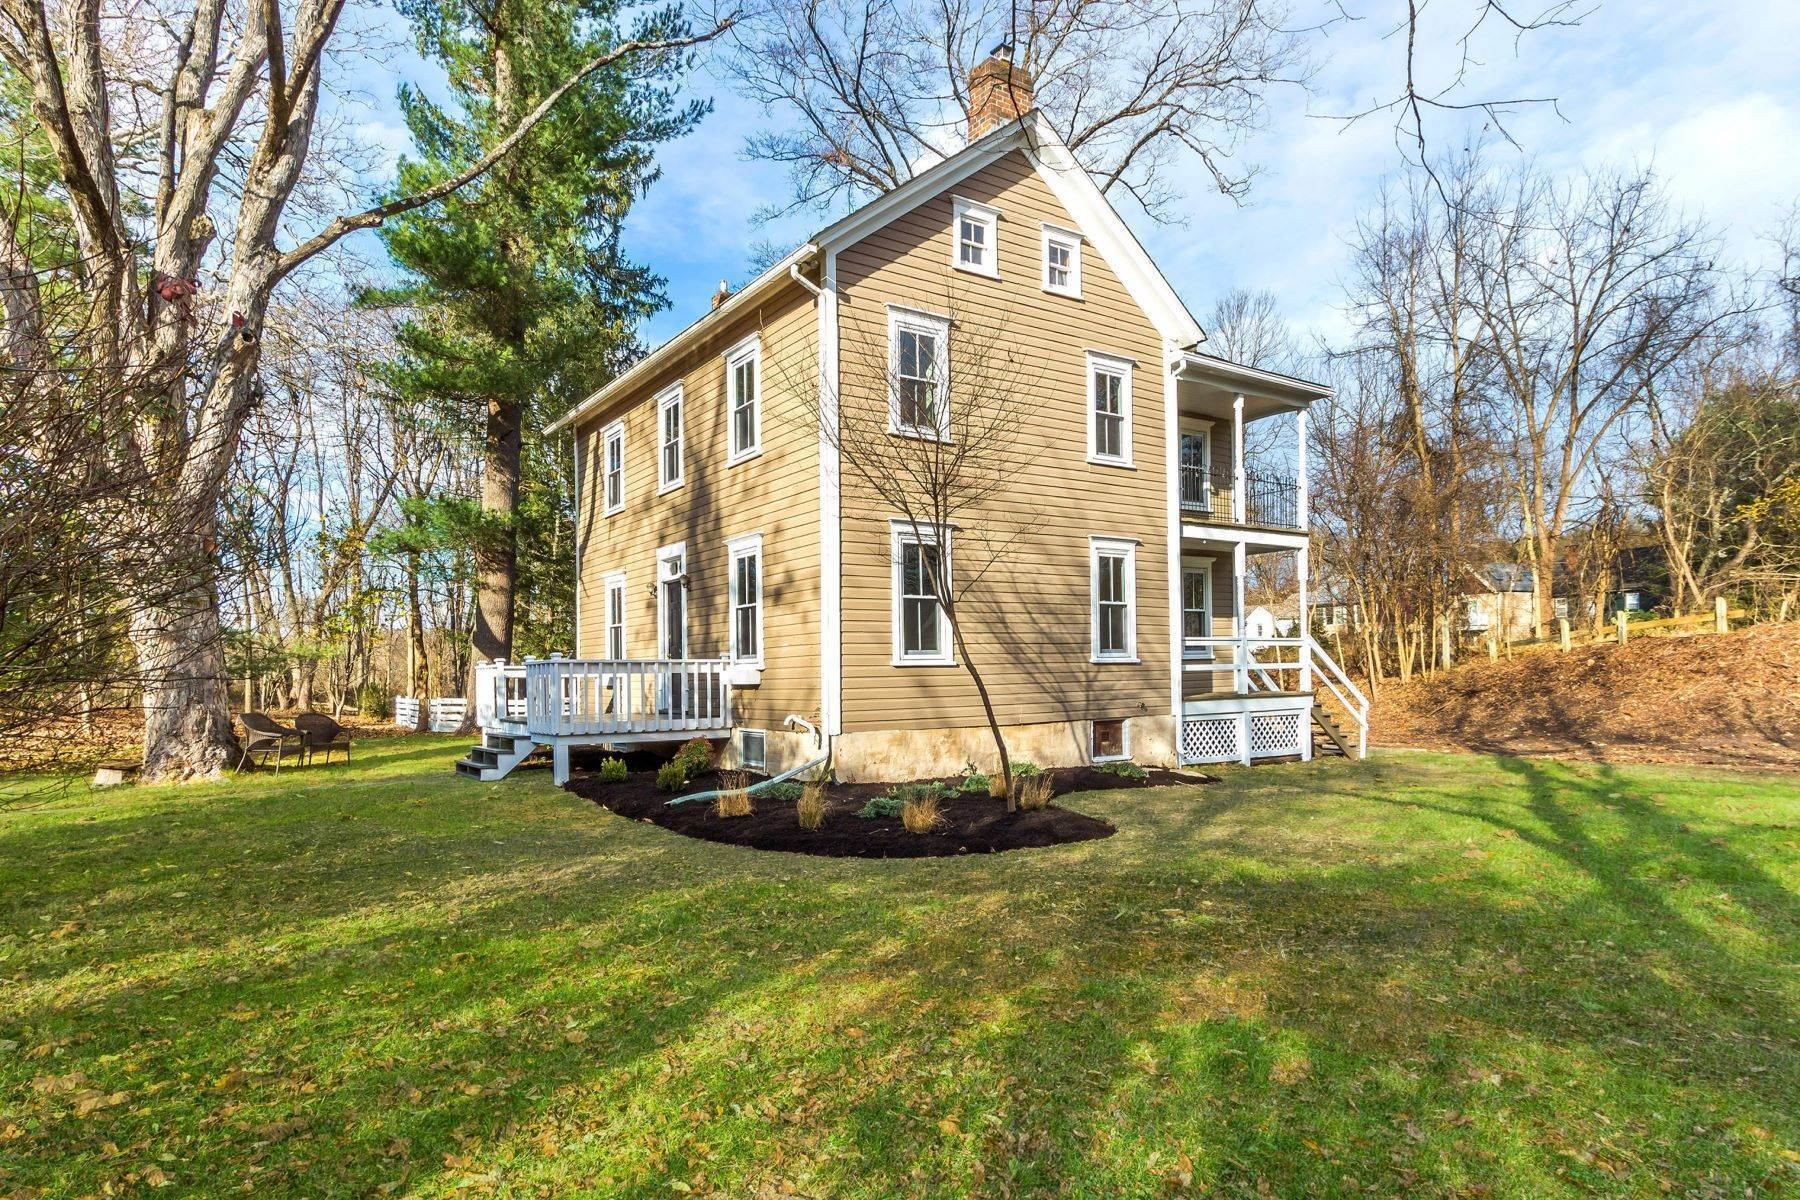 Single Family Homes for Sale at 1 ELM STREET Lambertville, New Jersey 08530 United States